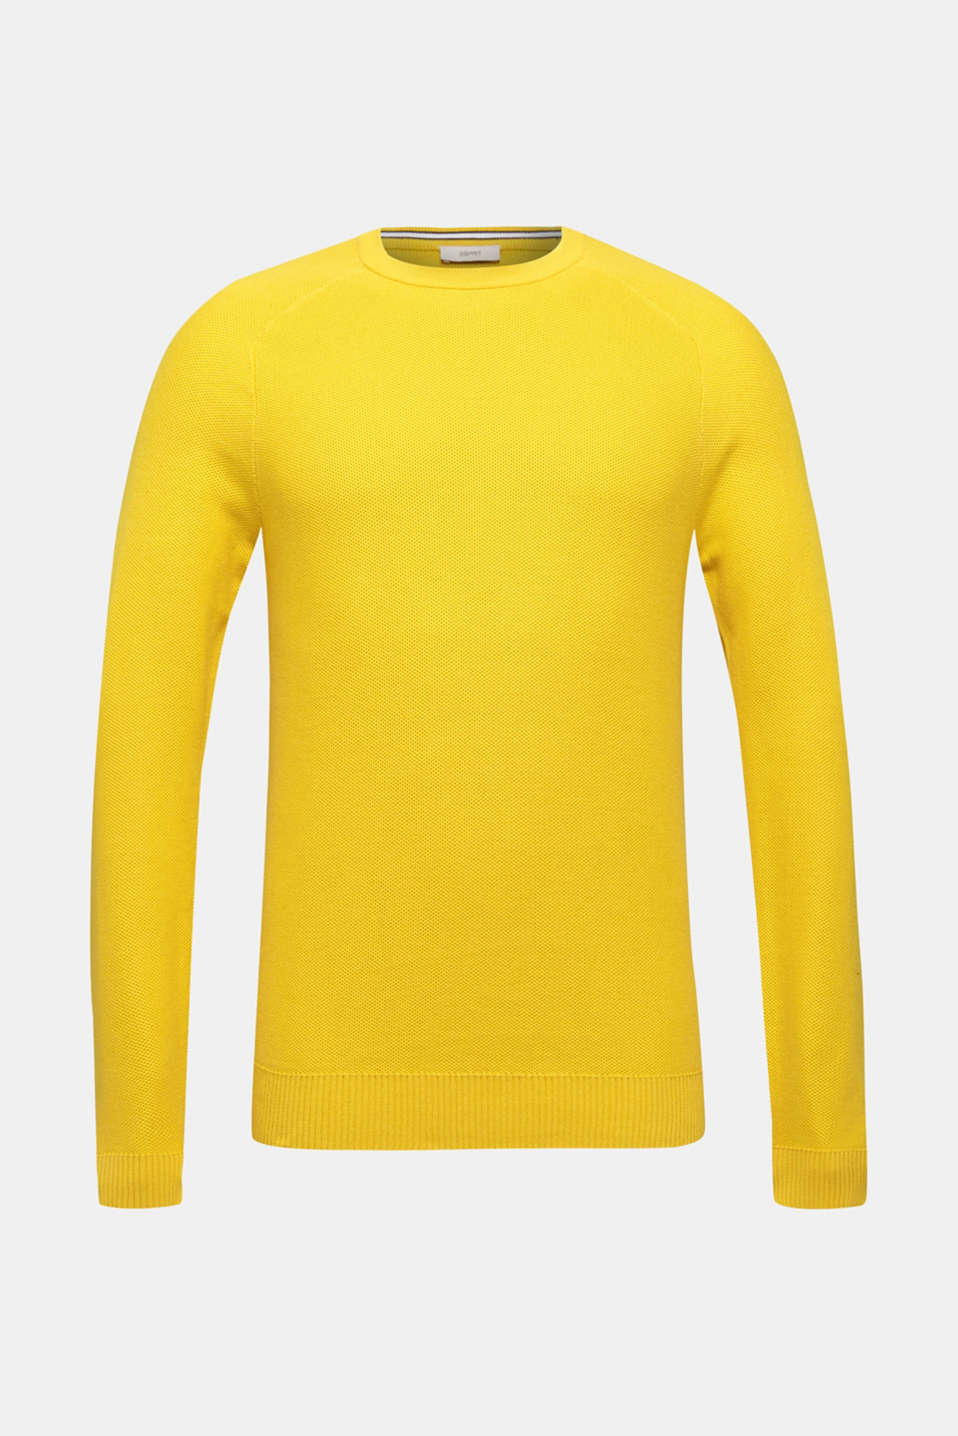 Textured jumper made of 100% cotton, YELLOW, detail image number 5